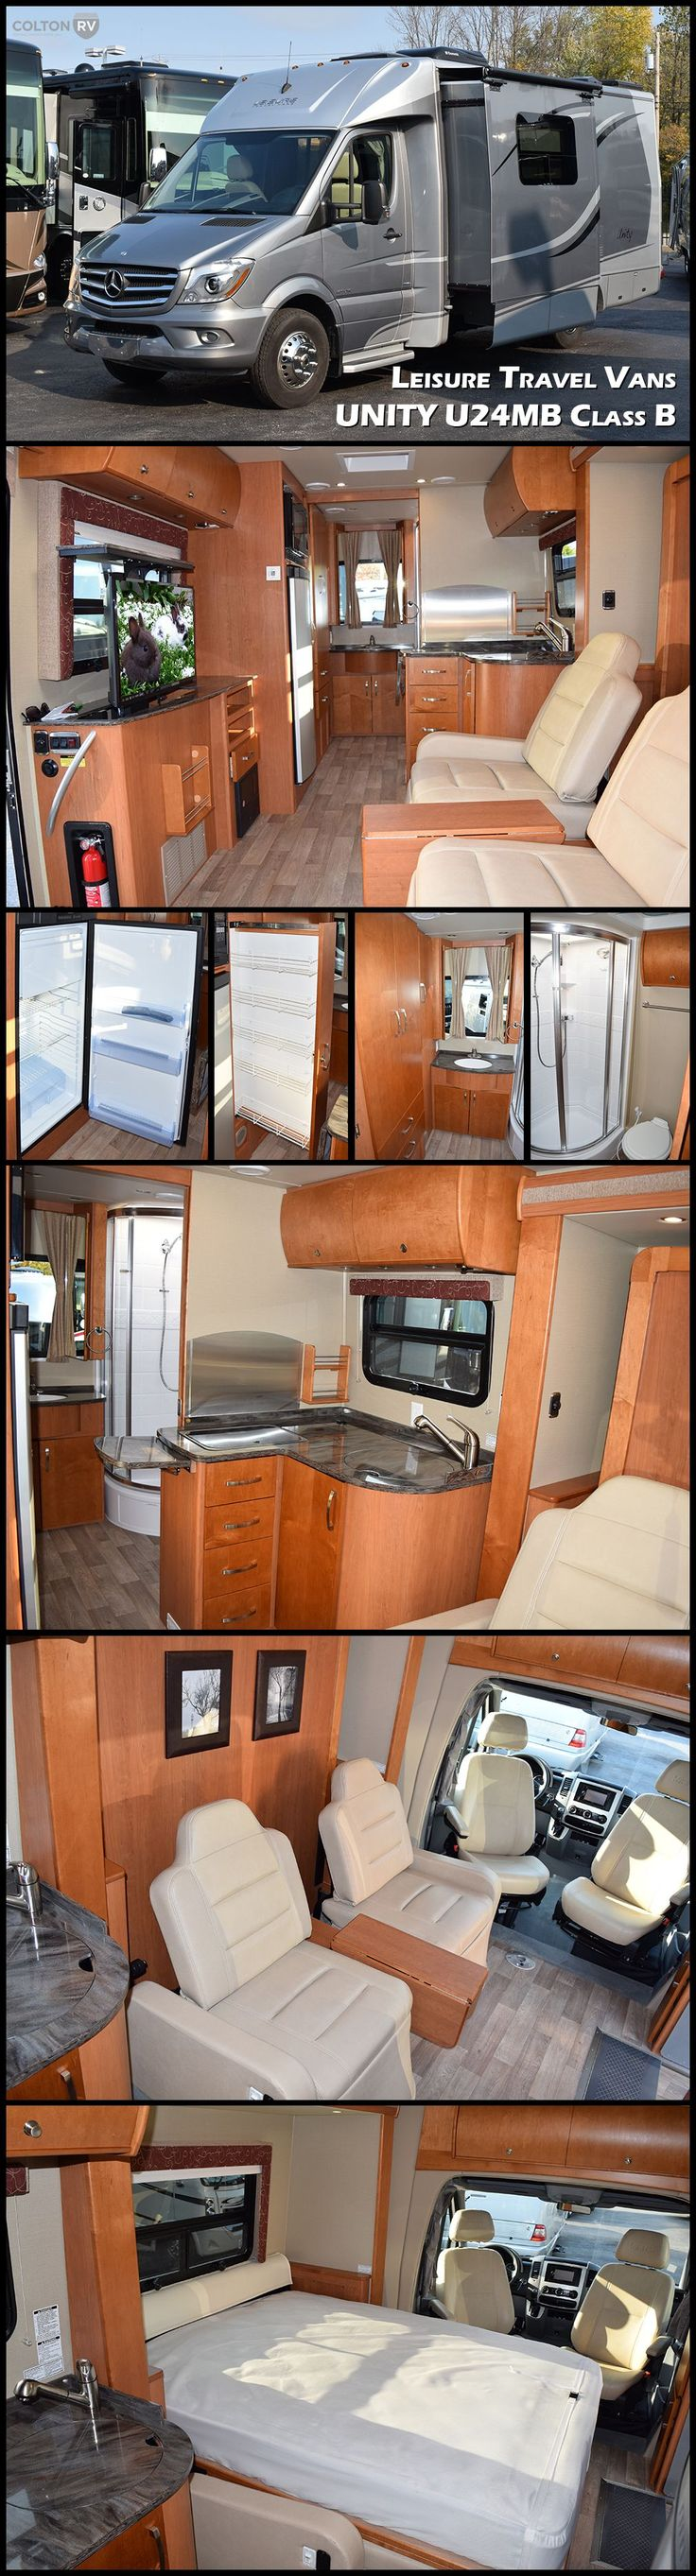 "UNITY U24M by LEISURE TRAVEL VANS Class B Motorhome. The U24MB is the Unity's flagship model, and there's no question why. Featuring a queen-size 60"" x 74"" automated murphy bed located in the slide, a"